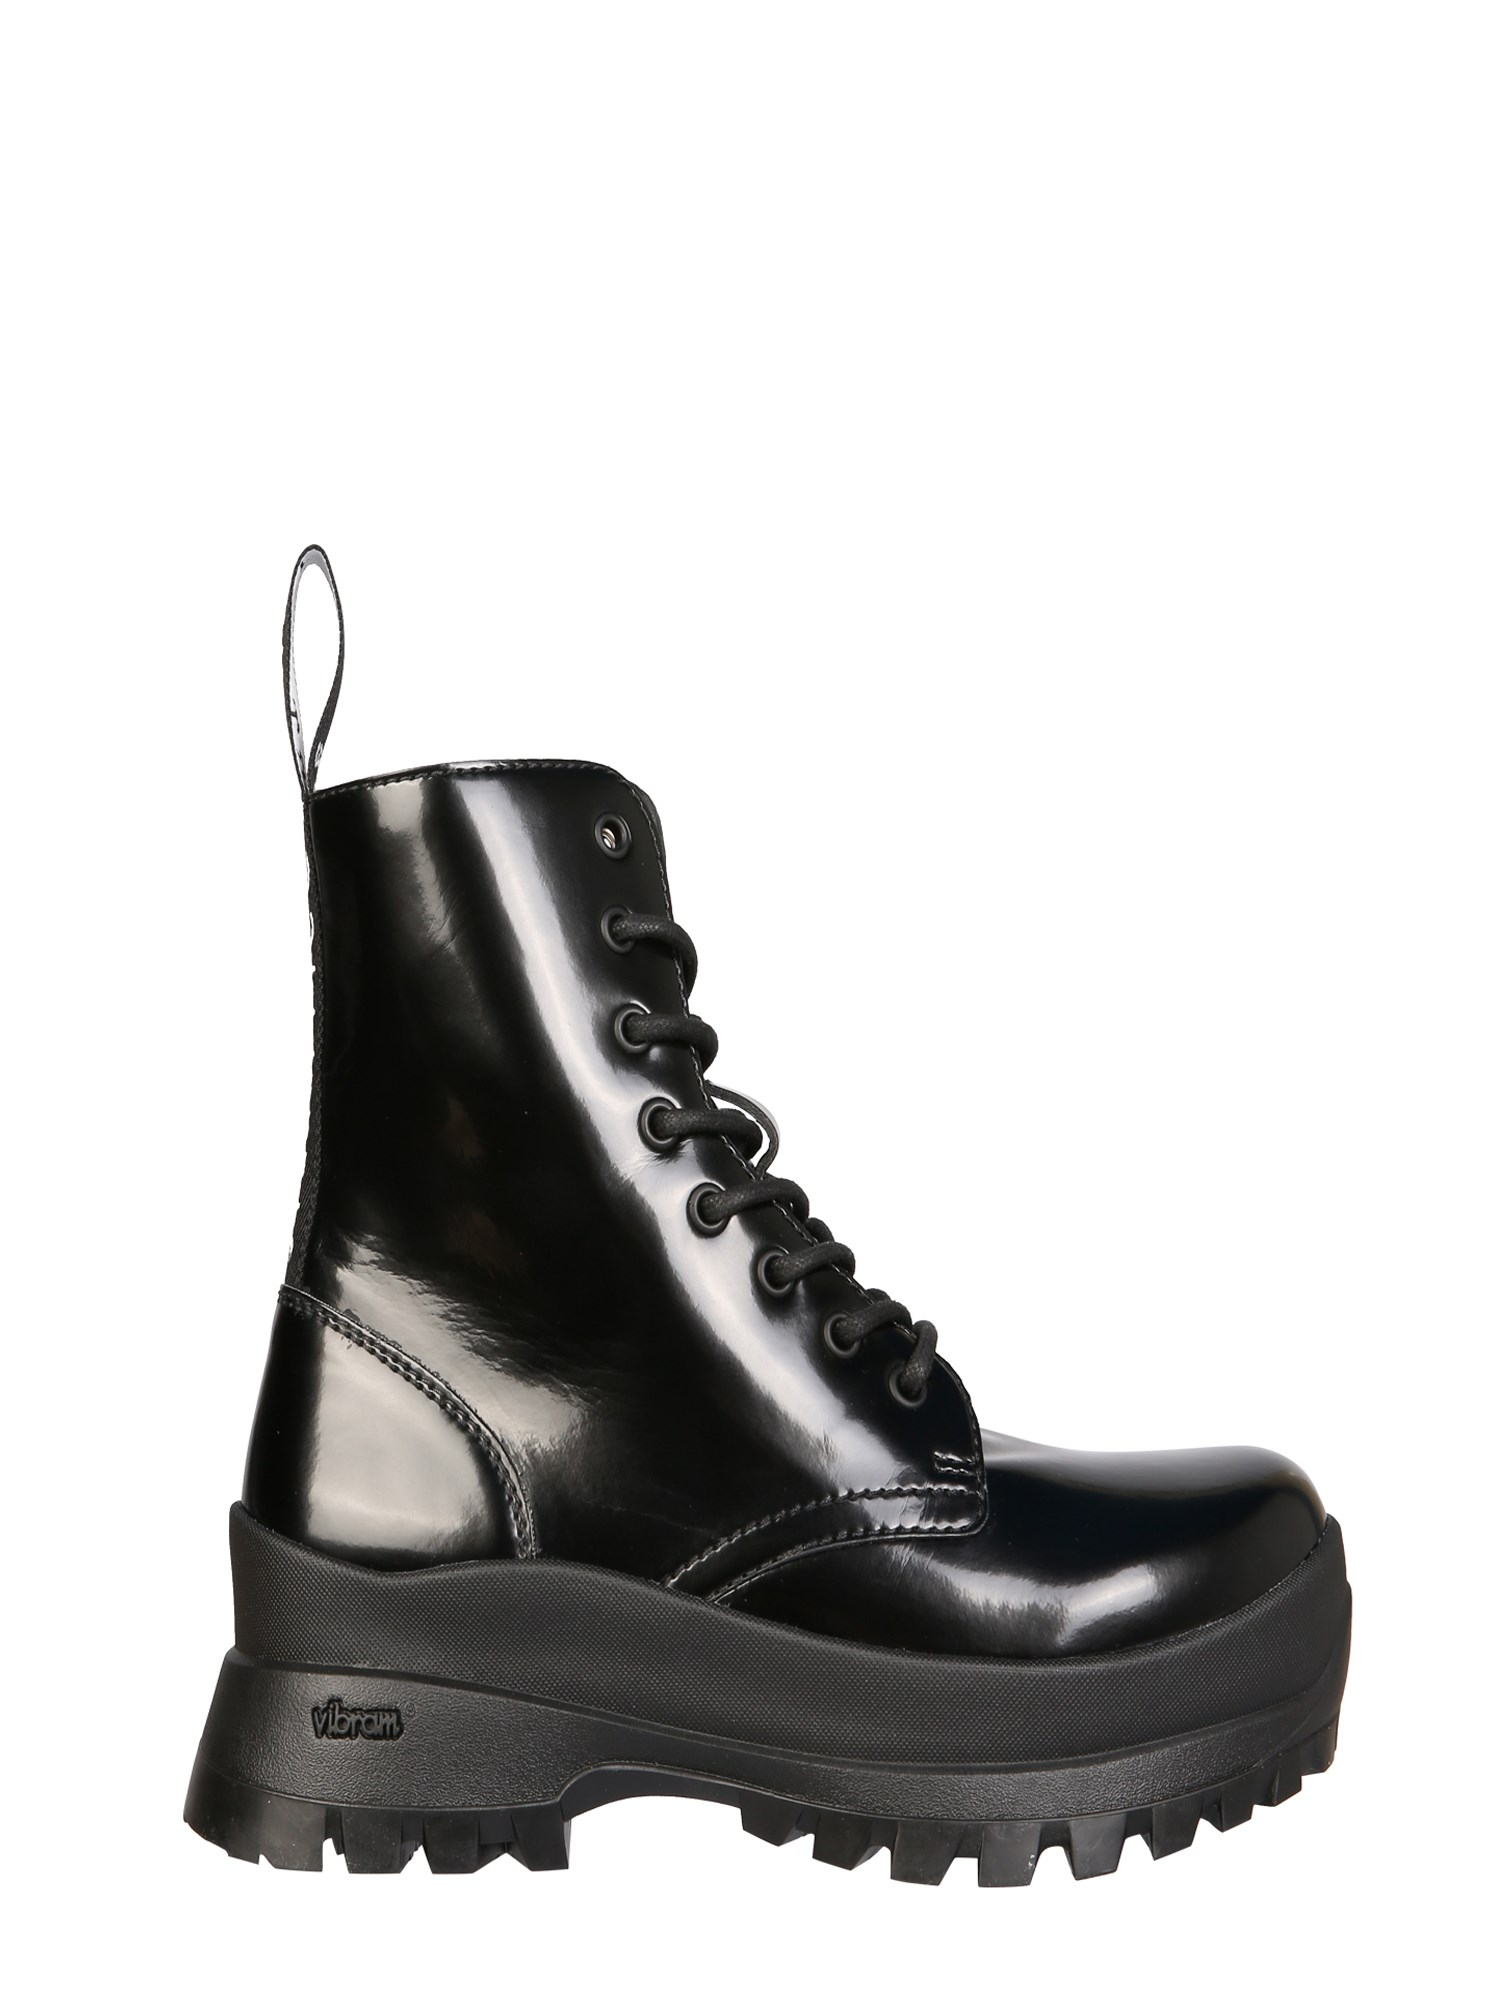 STELLA MCCARTNEY TRACE BOOTS